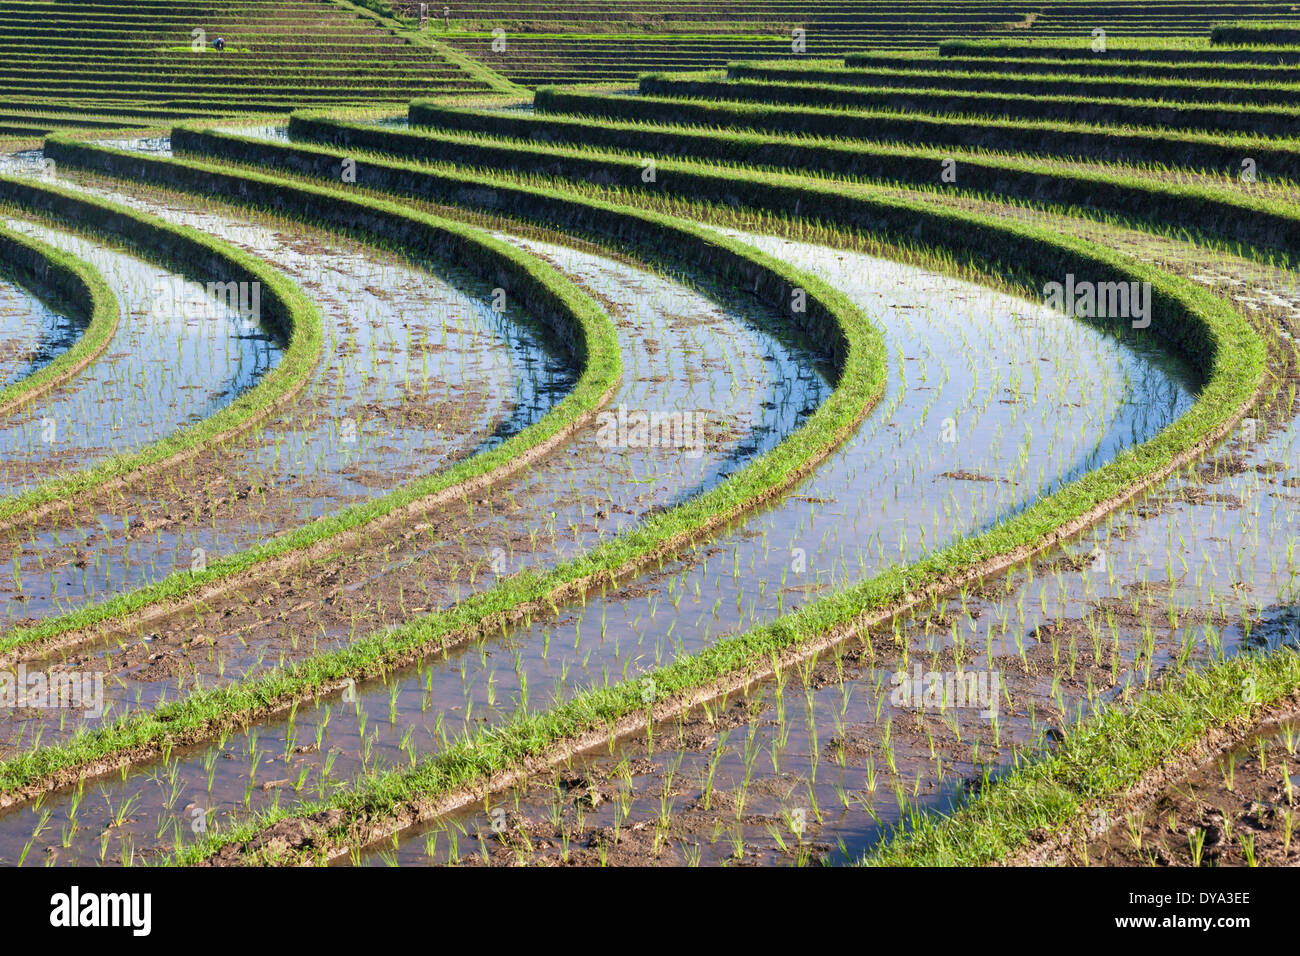 Rice field in region of Antosari and Belimbing (probably closer to Antosari), Bali, Indonesia - Stock Image